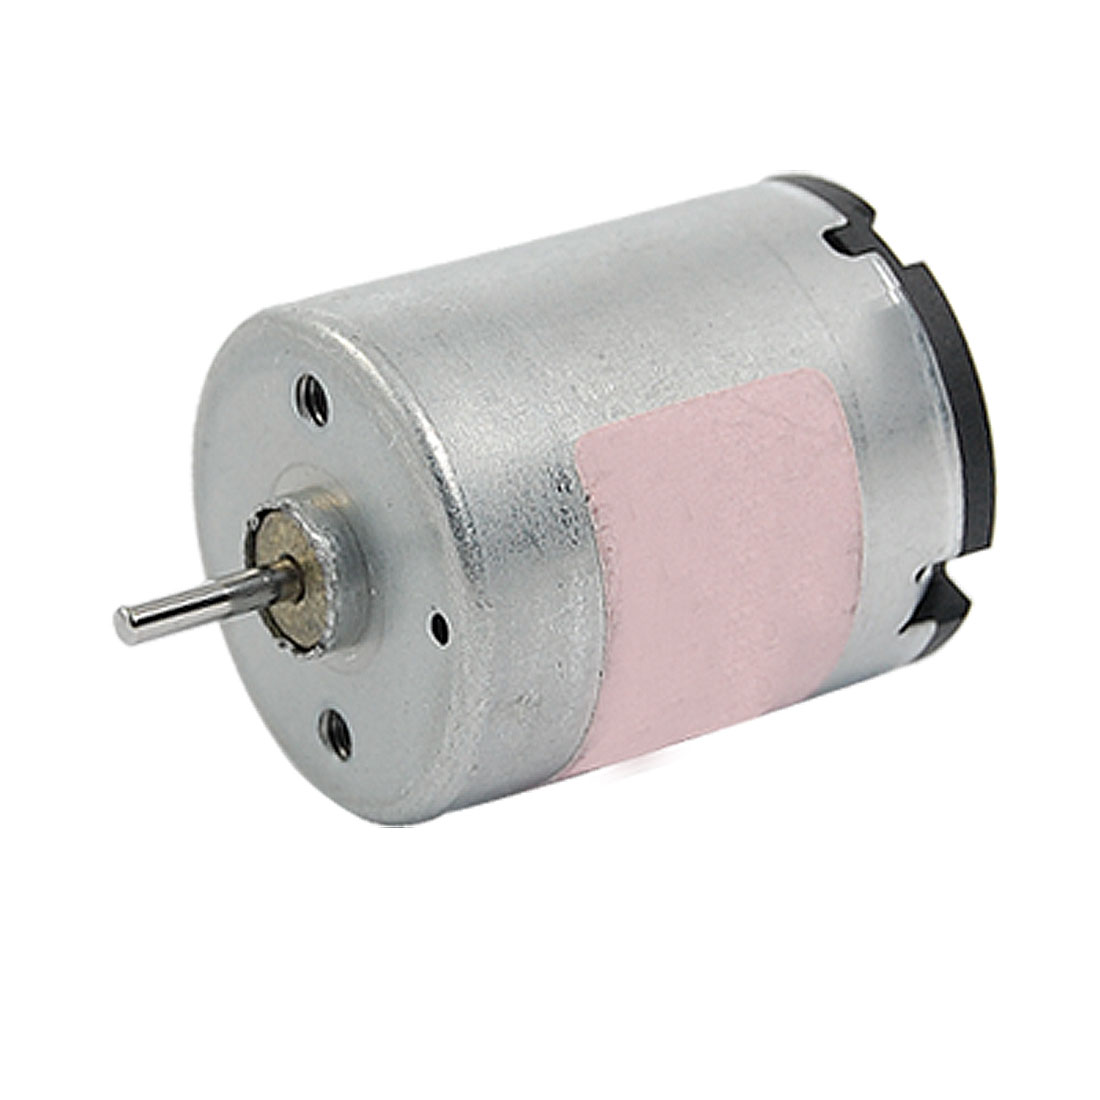 5500RPM 0.06A DC 12V Mini Motor for Electric Smart Cars DIY Toys